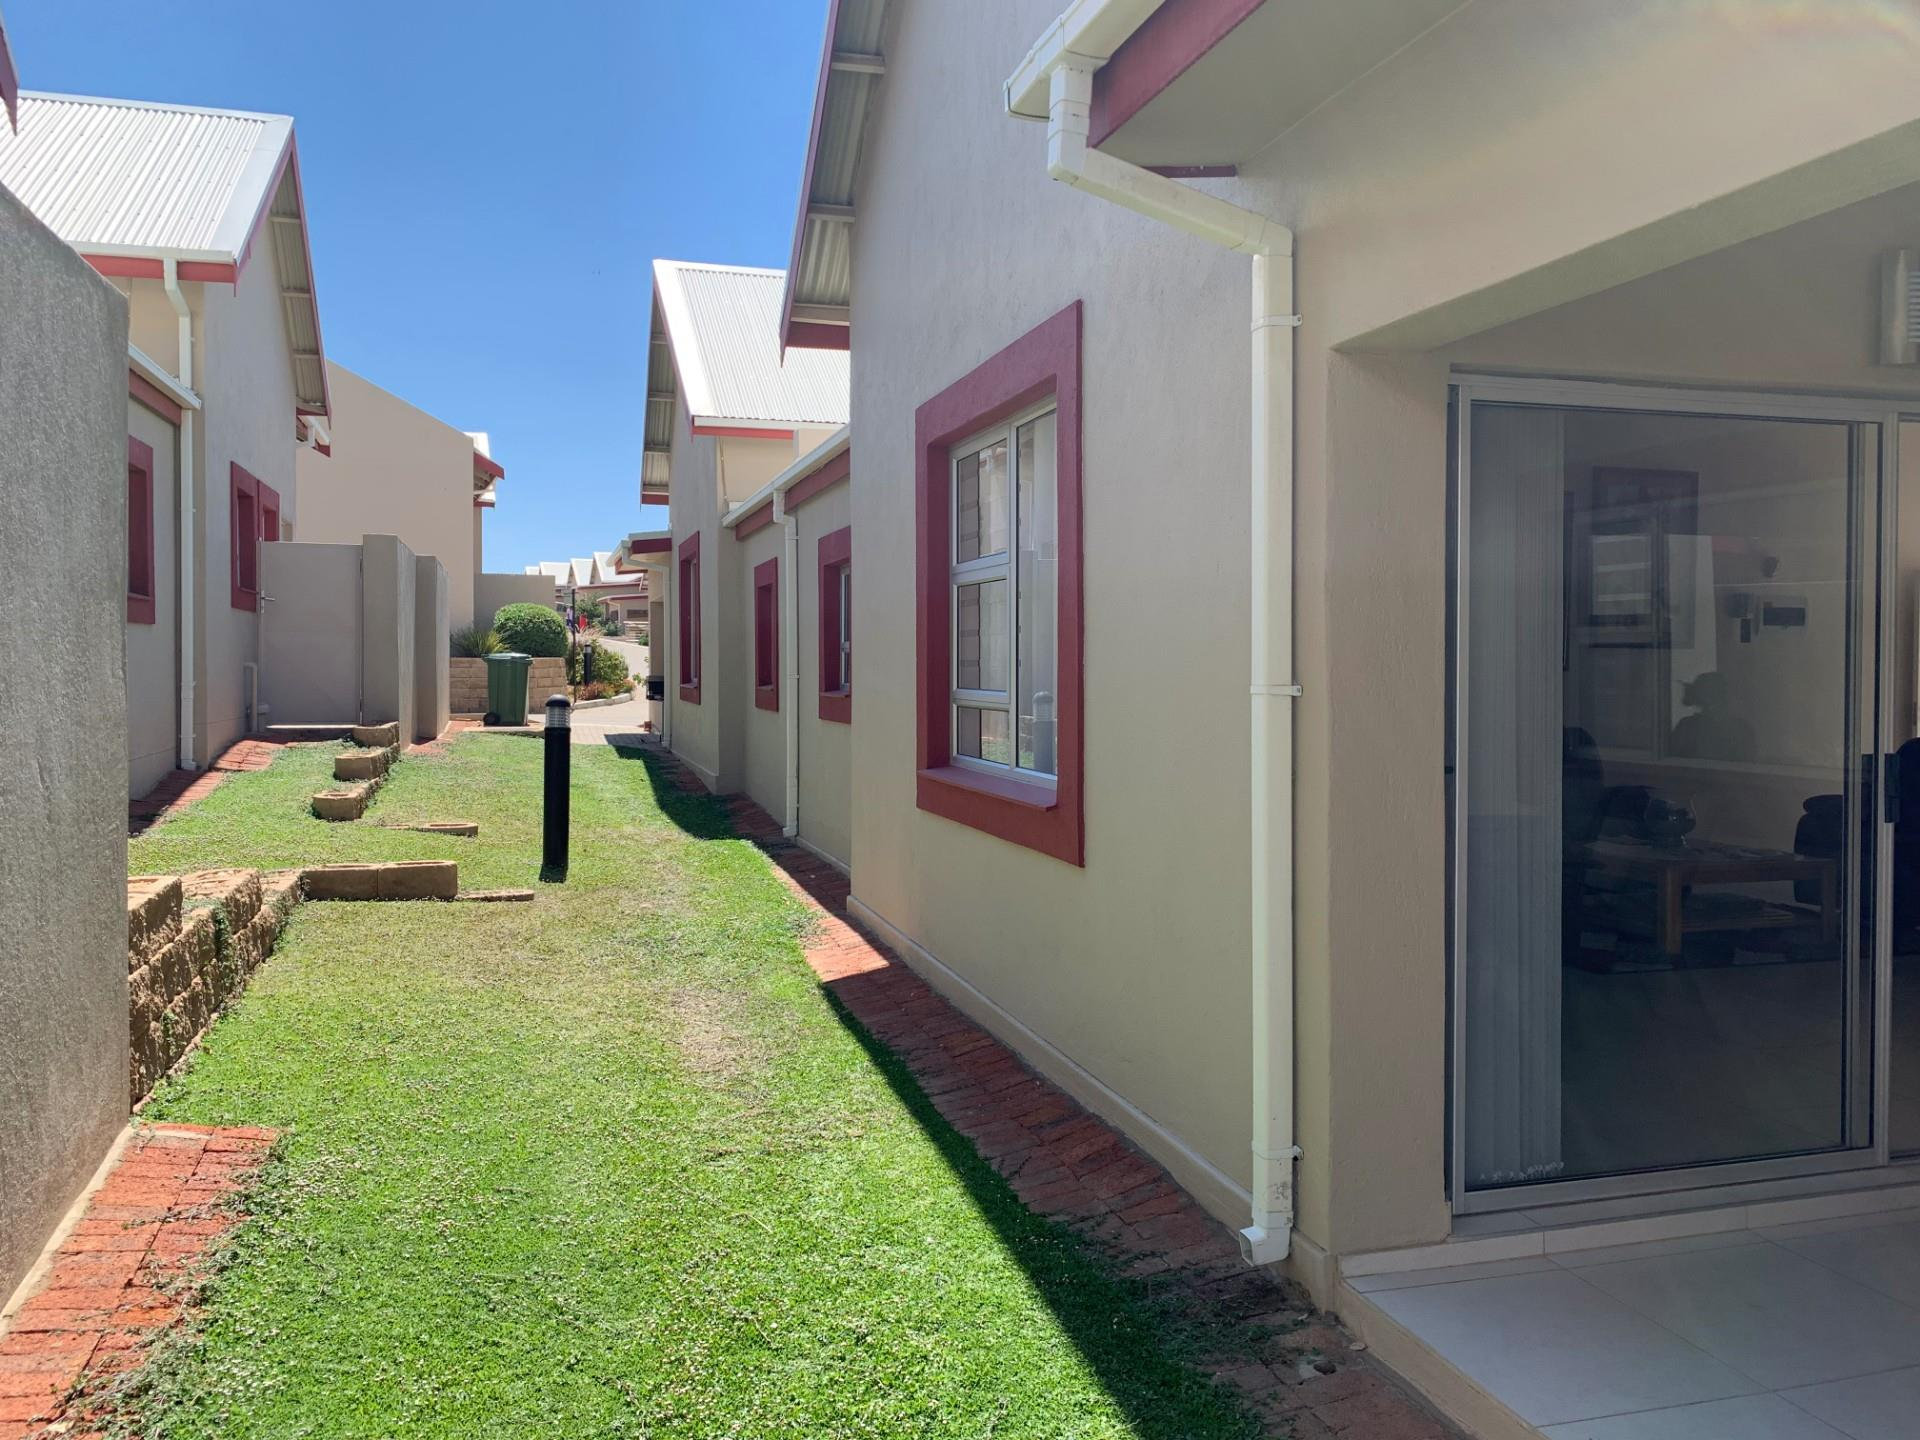 1 Bedroom House For Sale in Auasblick